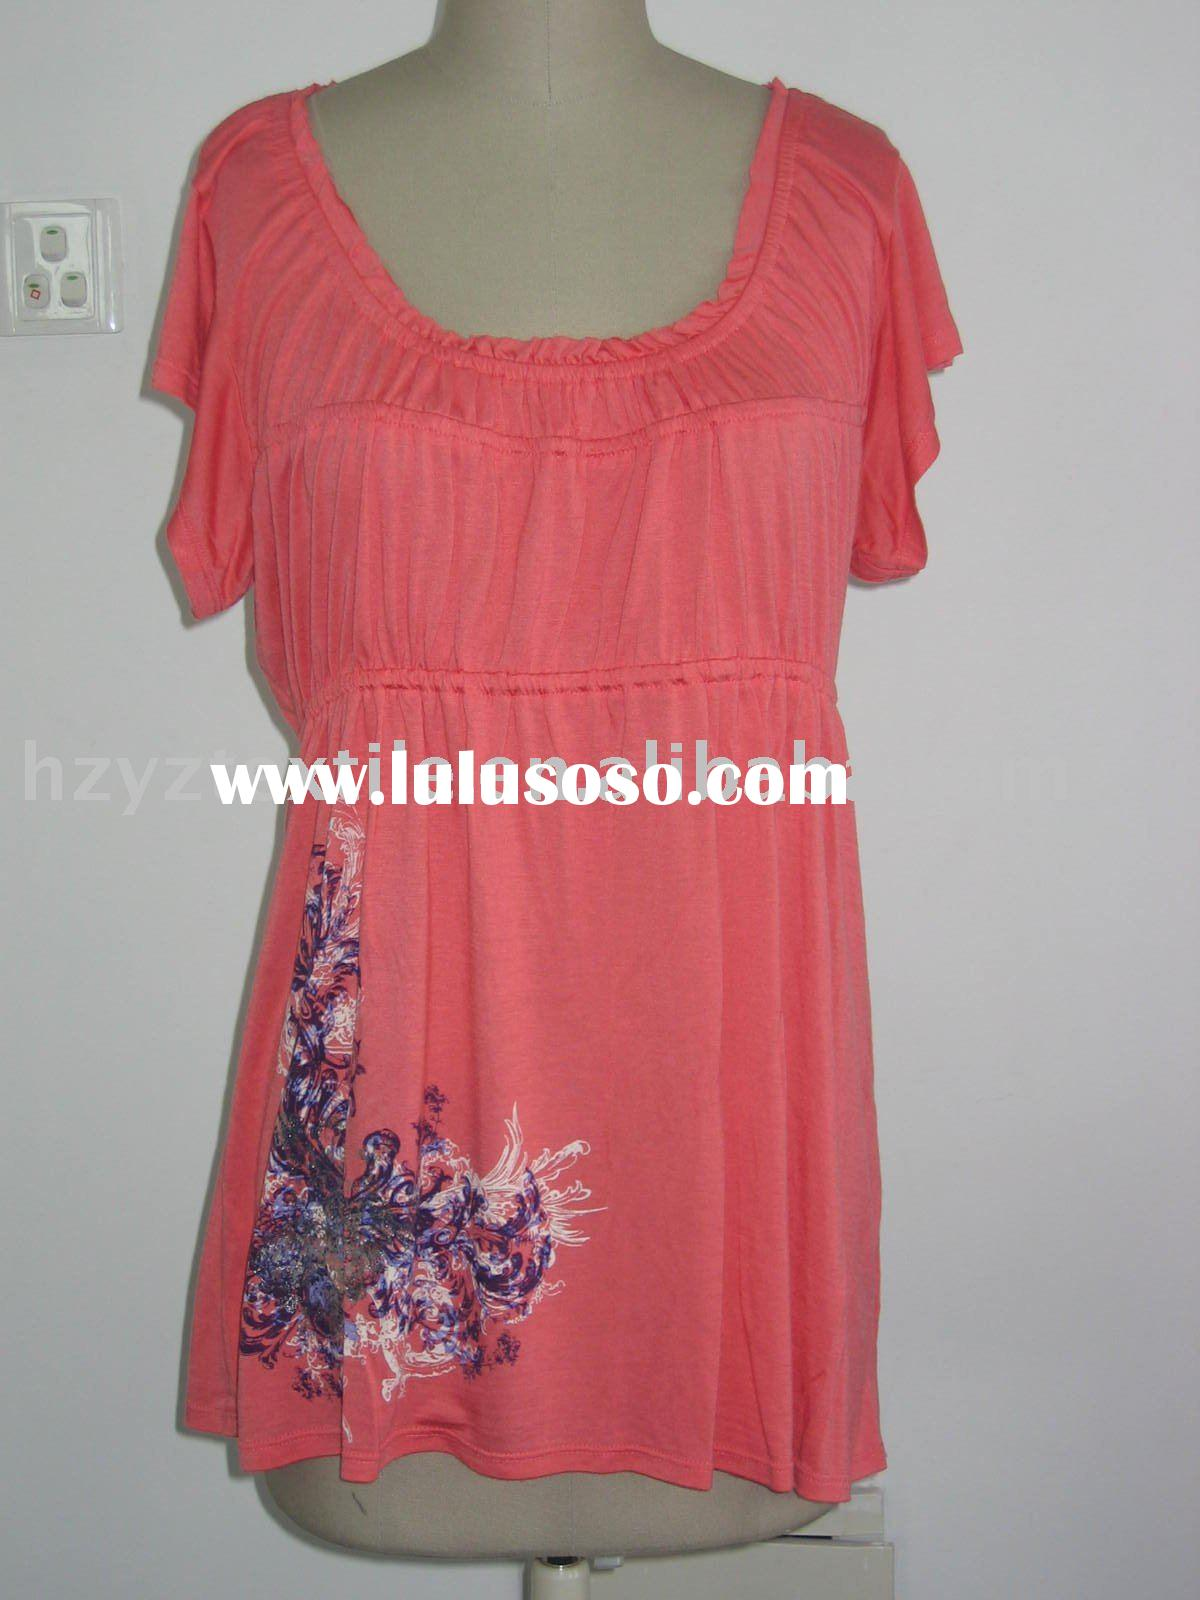 Popular 2011 fashion lady's blouse,tops,women blouse,women clothes,clothing